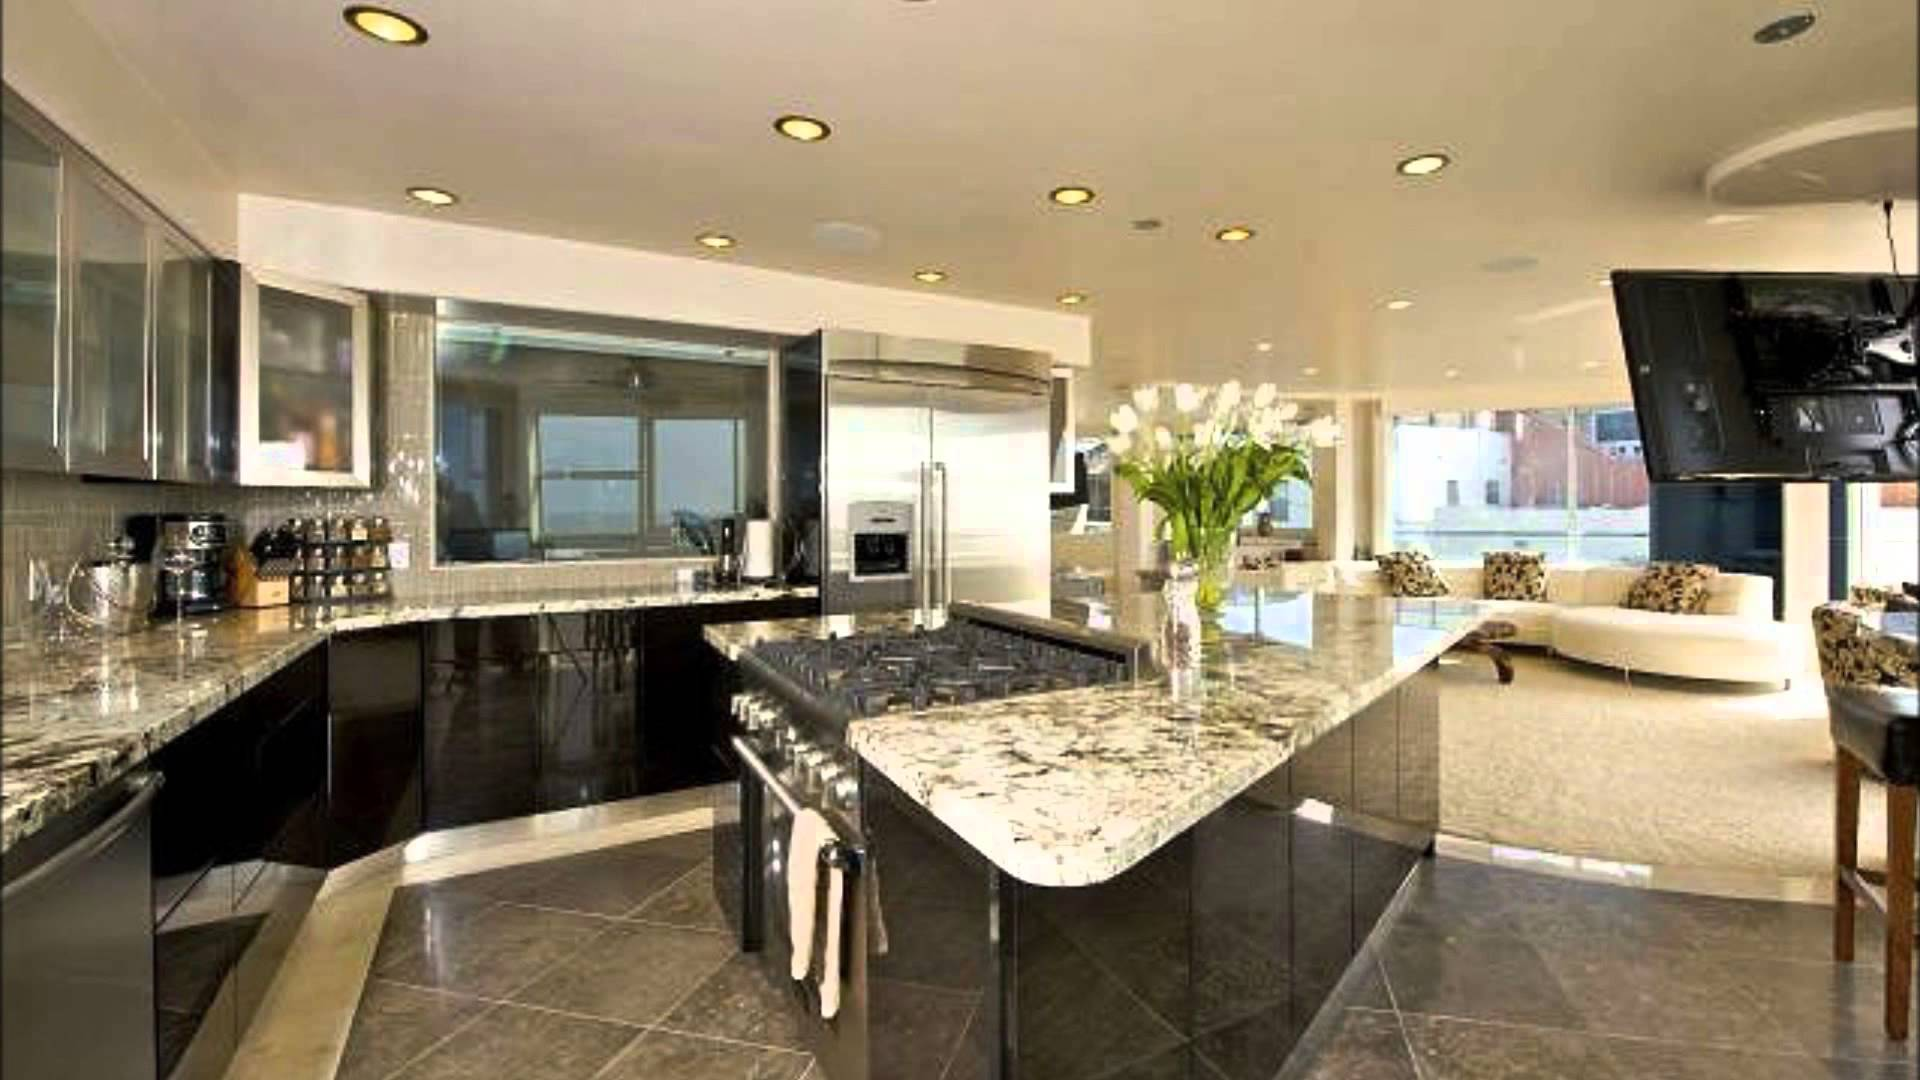 Design your own kitchen ideas with images for Design your kitchen